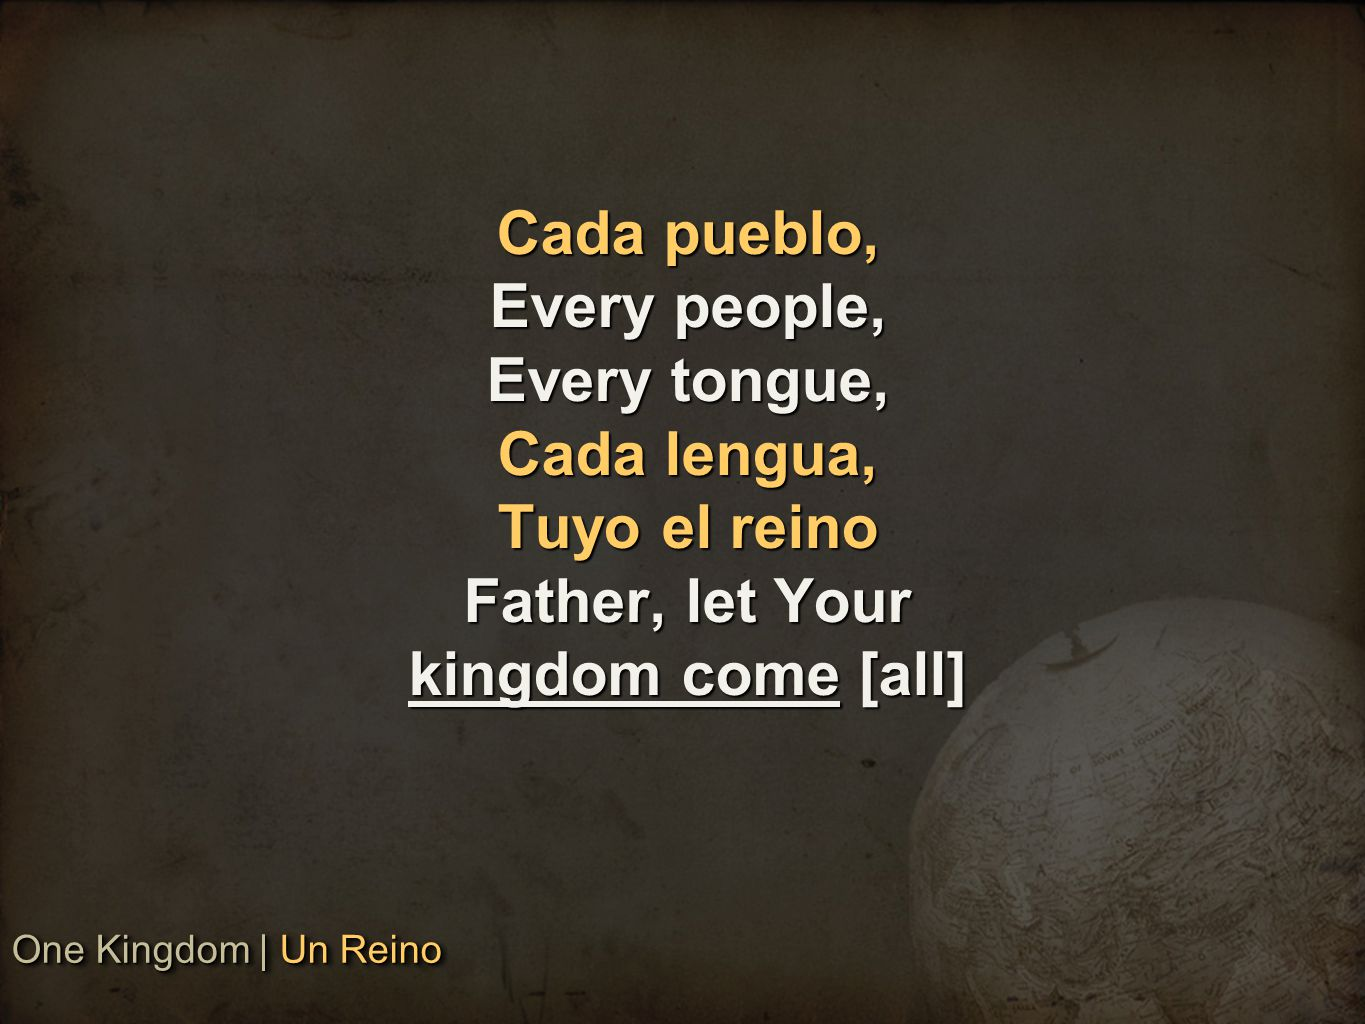 Cada pueblo, Every people, Every tongue, Cada lengua, Tuyo el reino